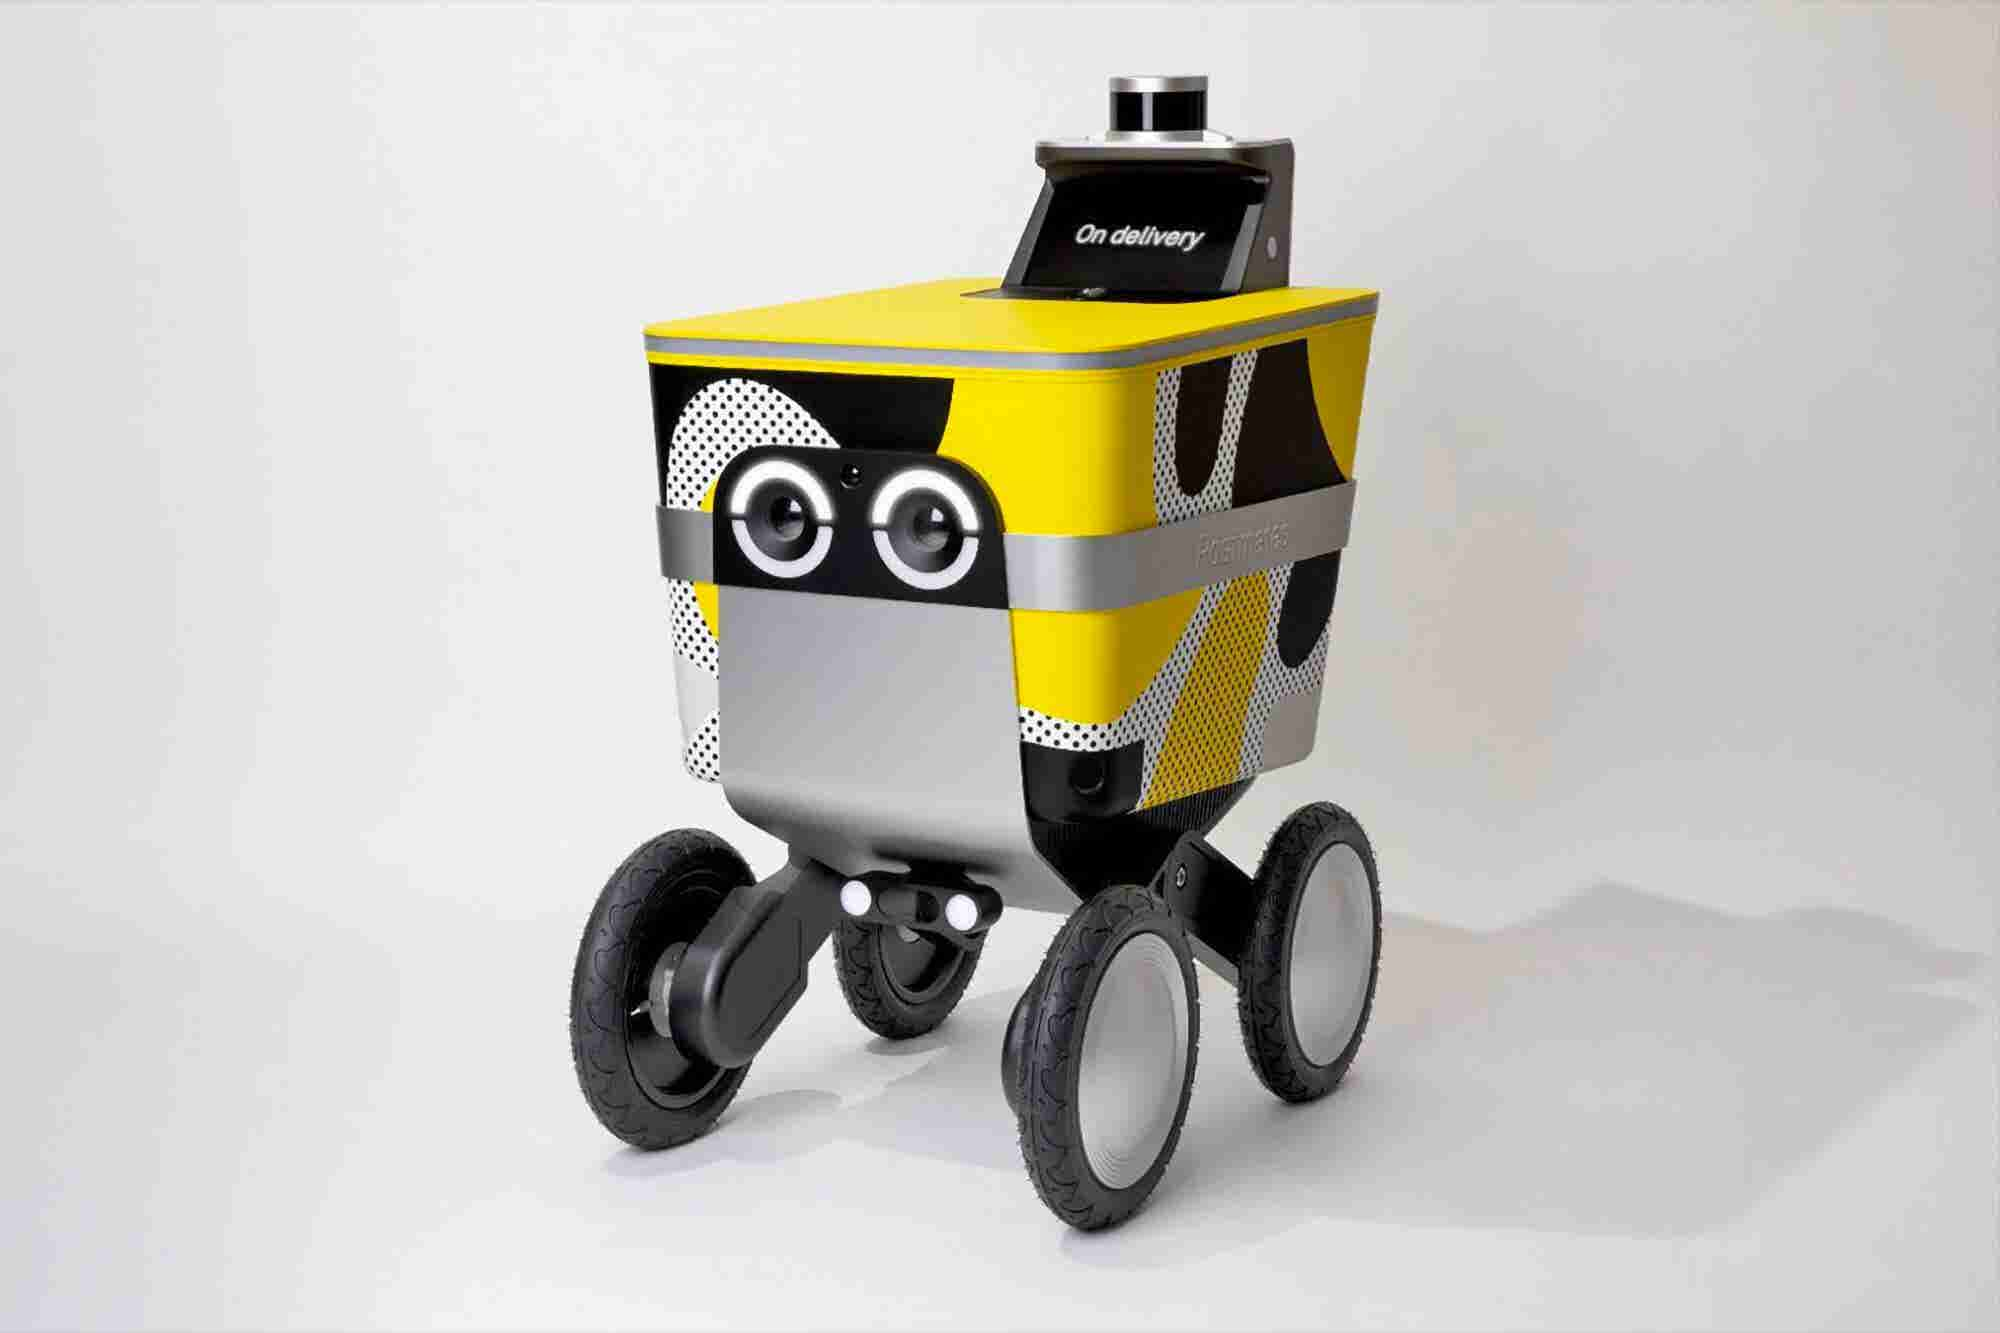 Postmates Unveils Its Adorable Autonomous Delivery Robot